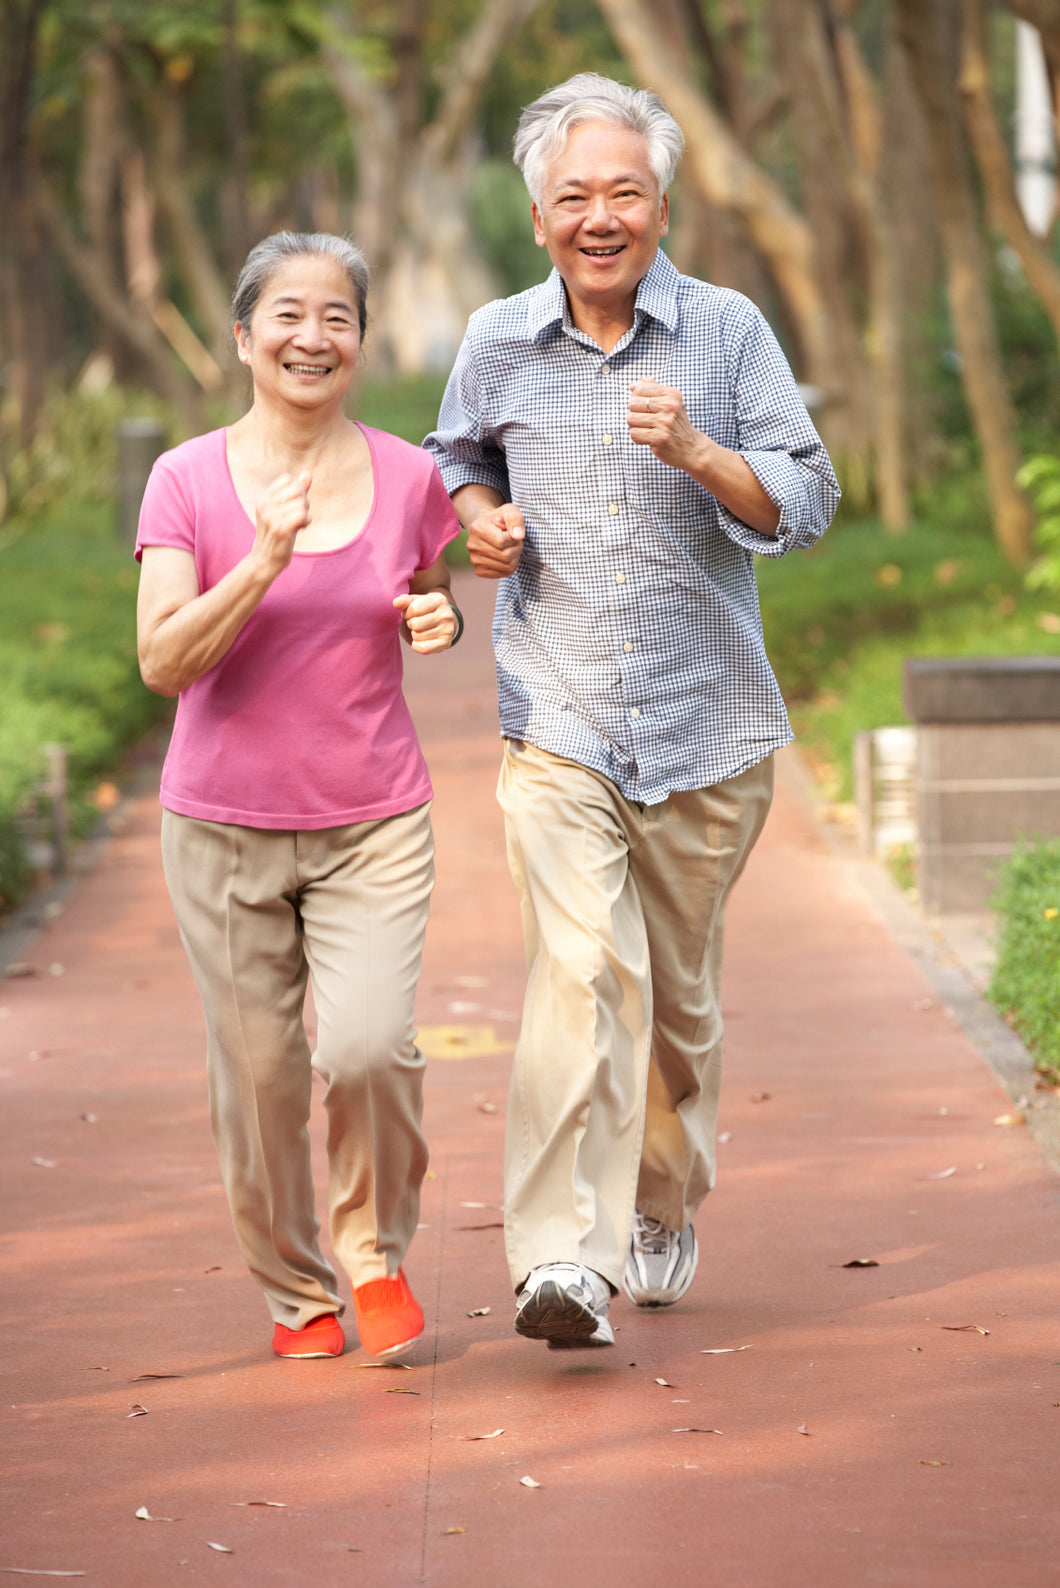 The Senior Citizen Home Safety Association: Enabling Active, Ageing-in-Place in Hong Kong